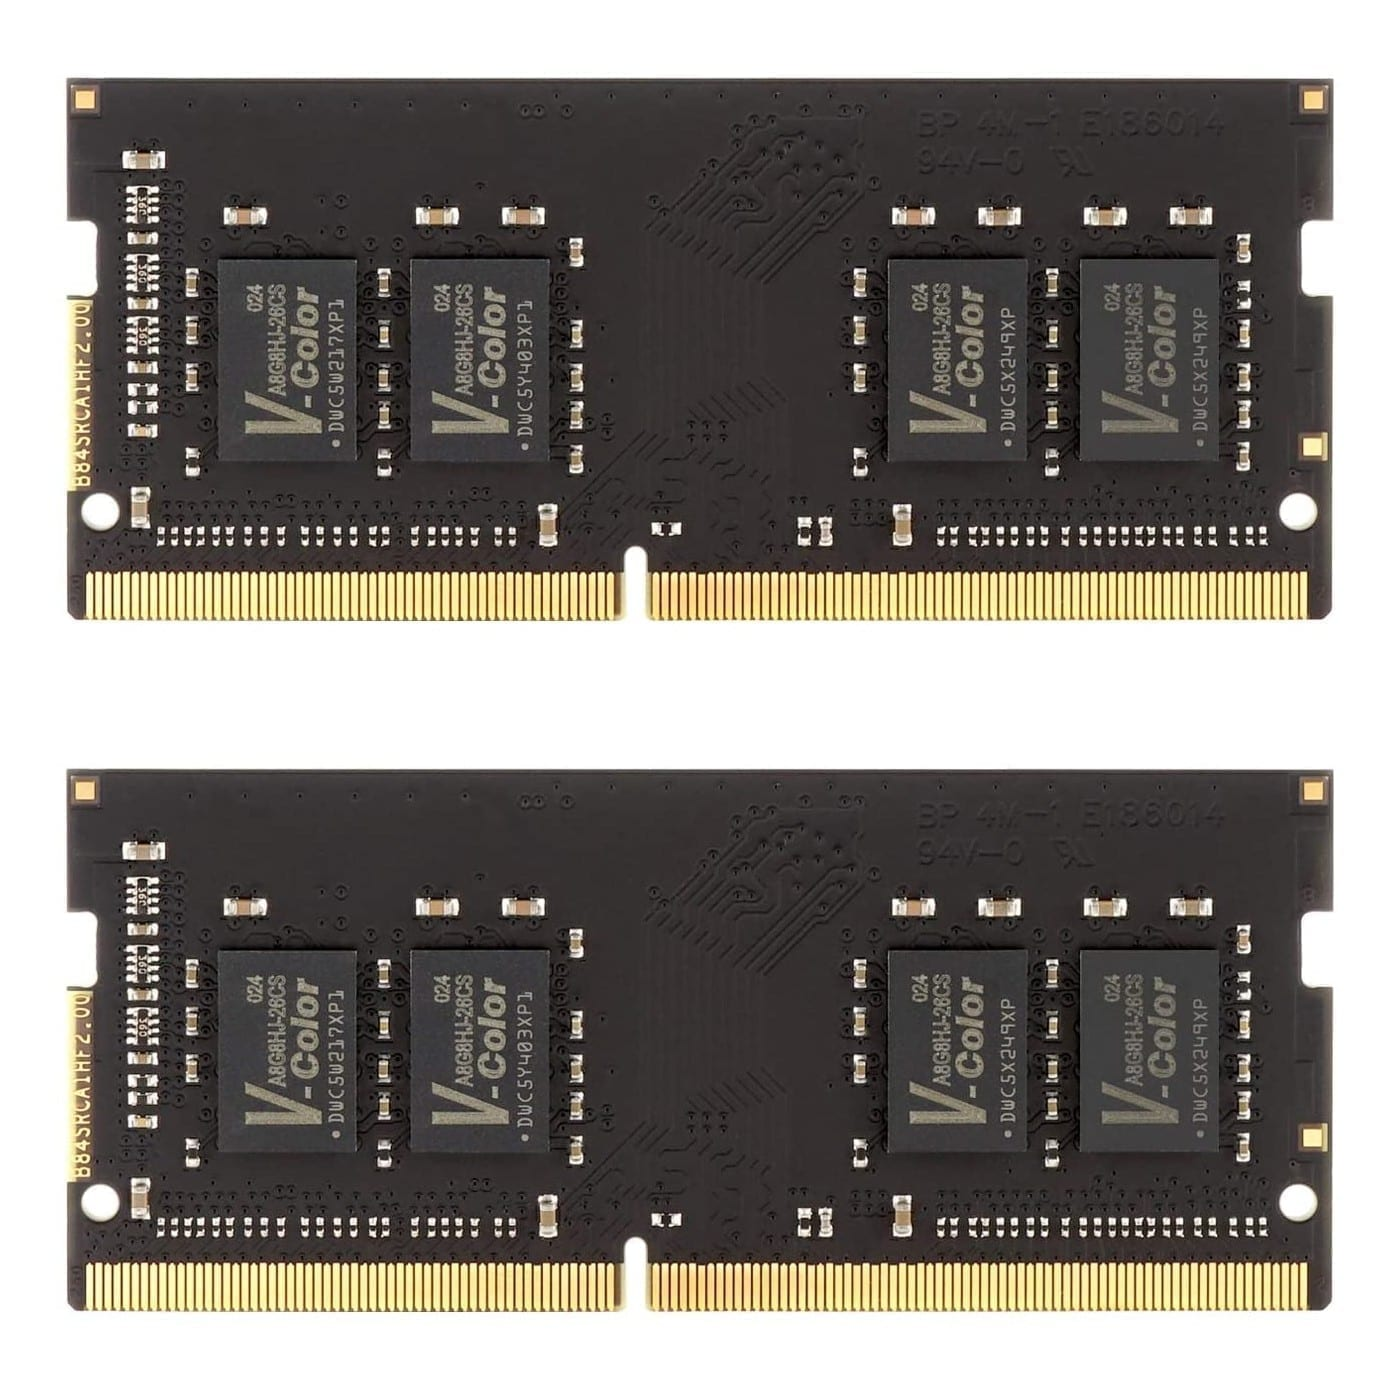 V-Color 16GB(2x8GB) DDR4 2666MHz RAM for Apple iMac 2020 & Late 2019 - (VHA19ASSR8G8T-8G26SD) 3